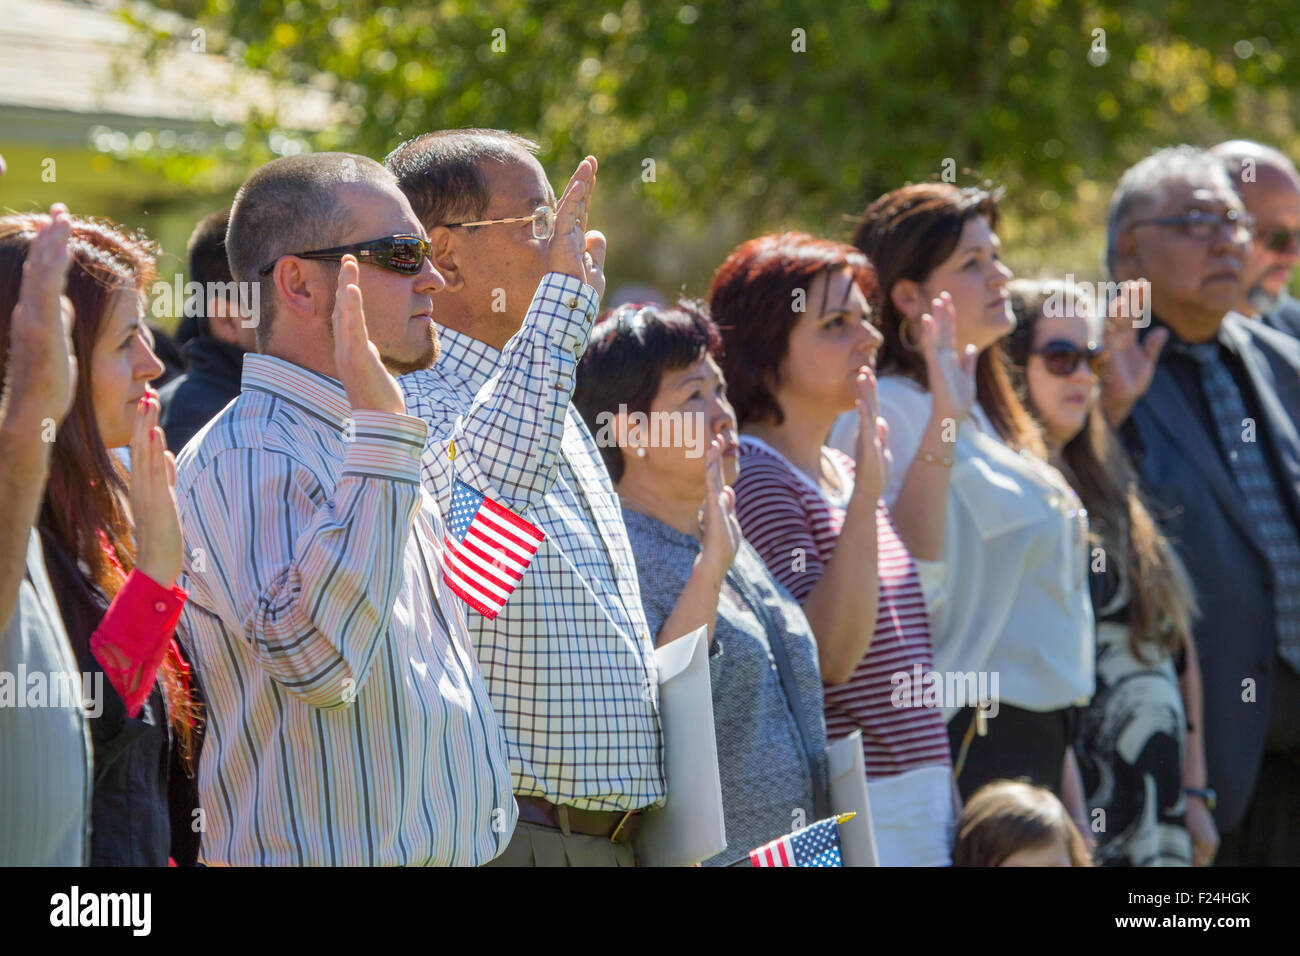 Immigrants from 22 different countries take the oath of allegiance during a naturalization ceremony in Yellowstone - Stock Image